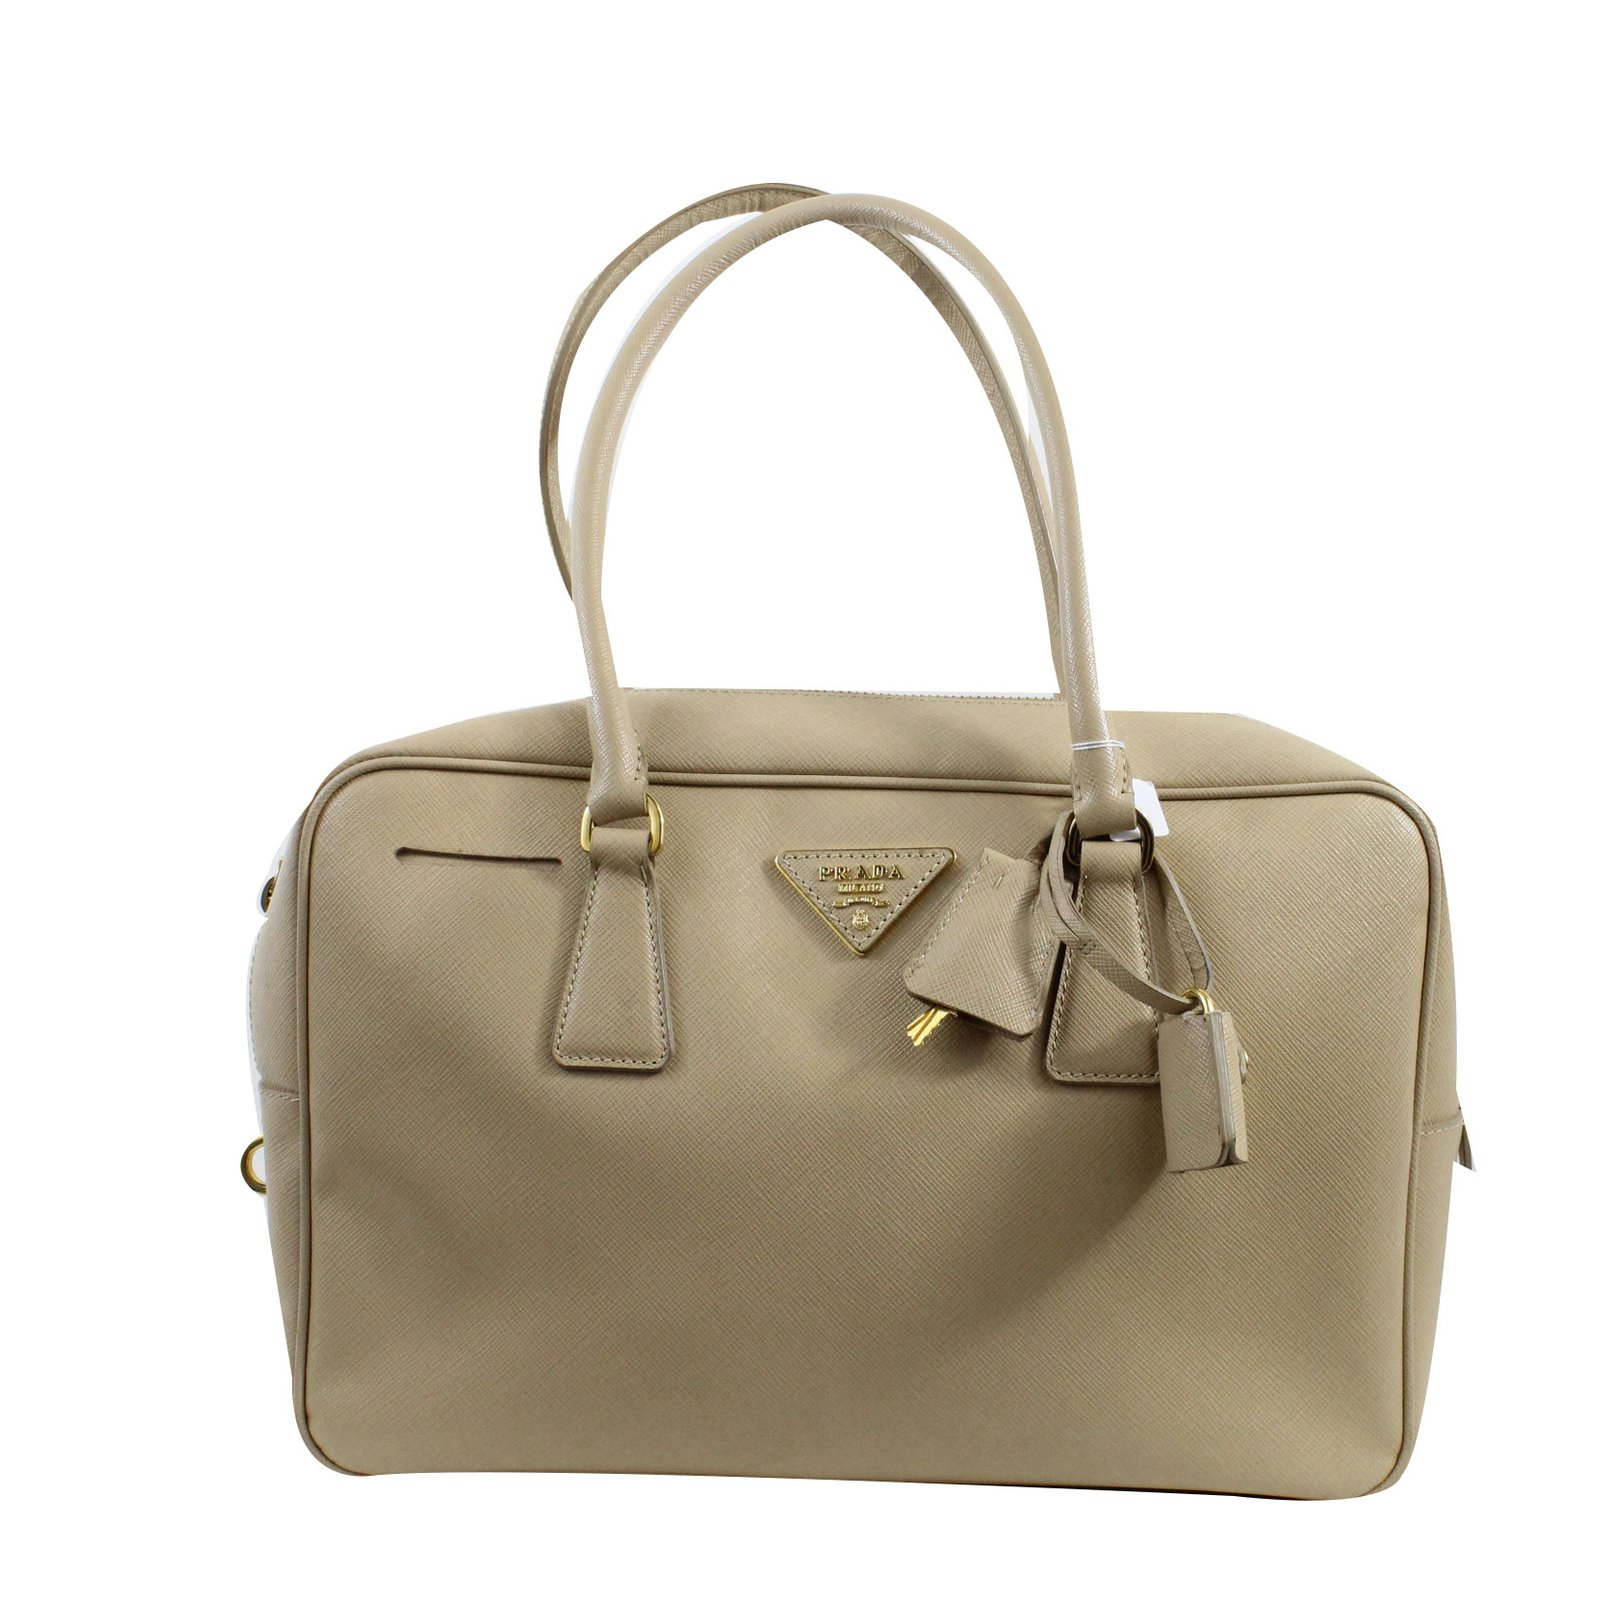 Prada Bauletto Handbags Leather Beige Ref 51059